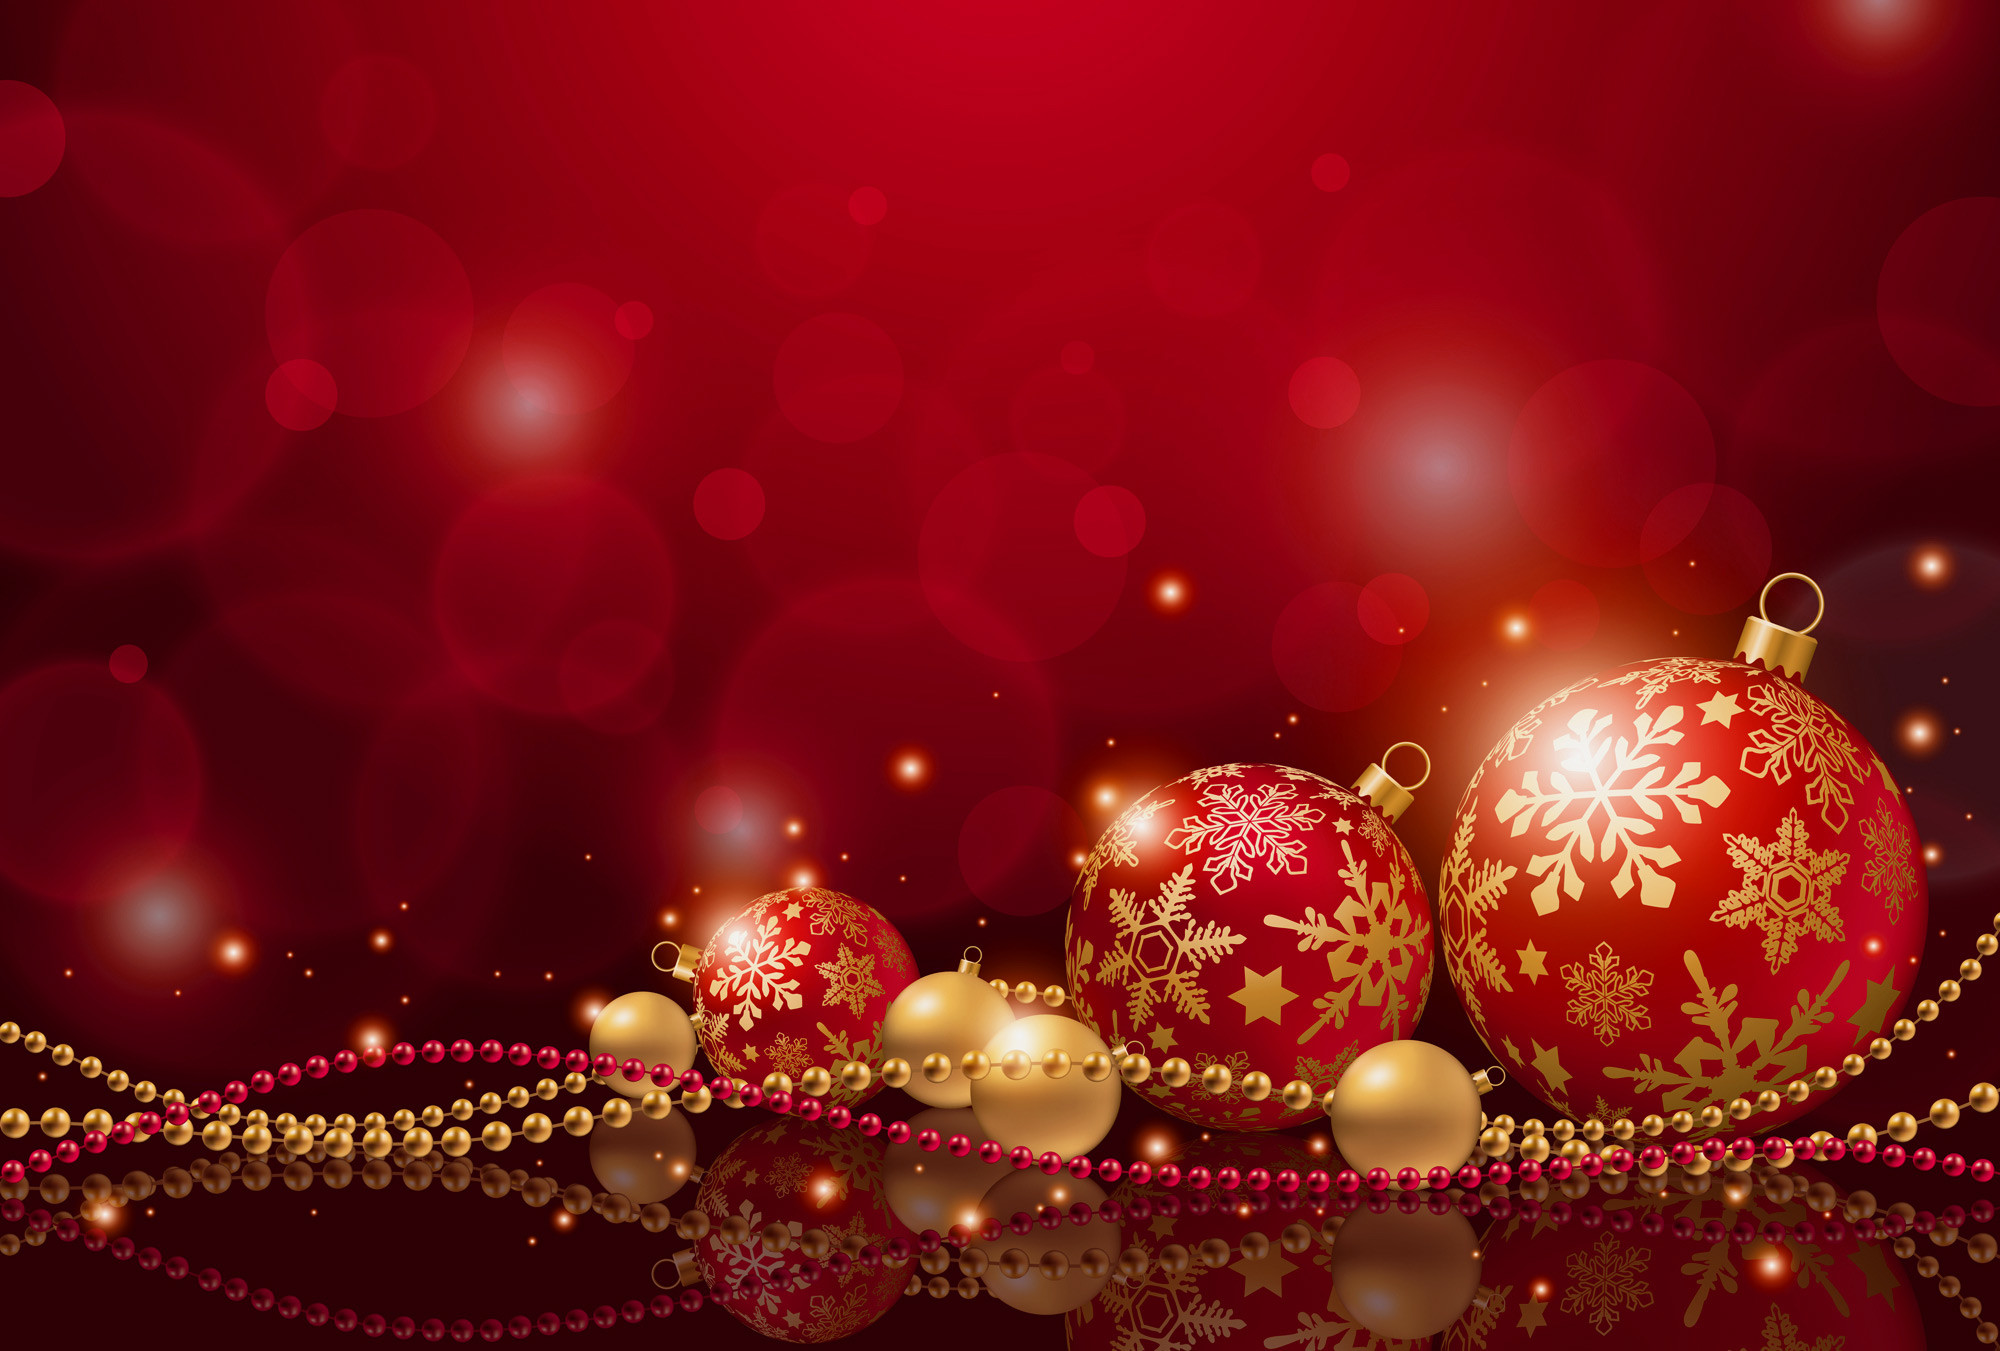 Tags: Christmas Background